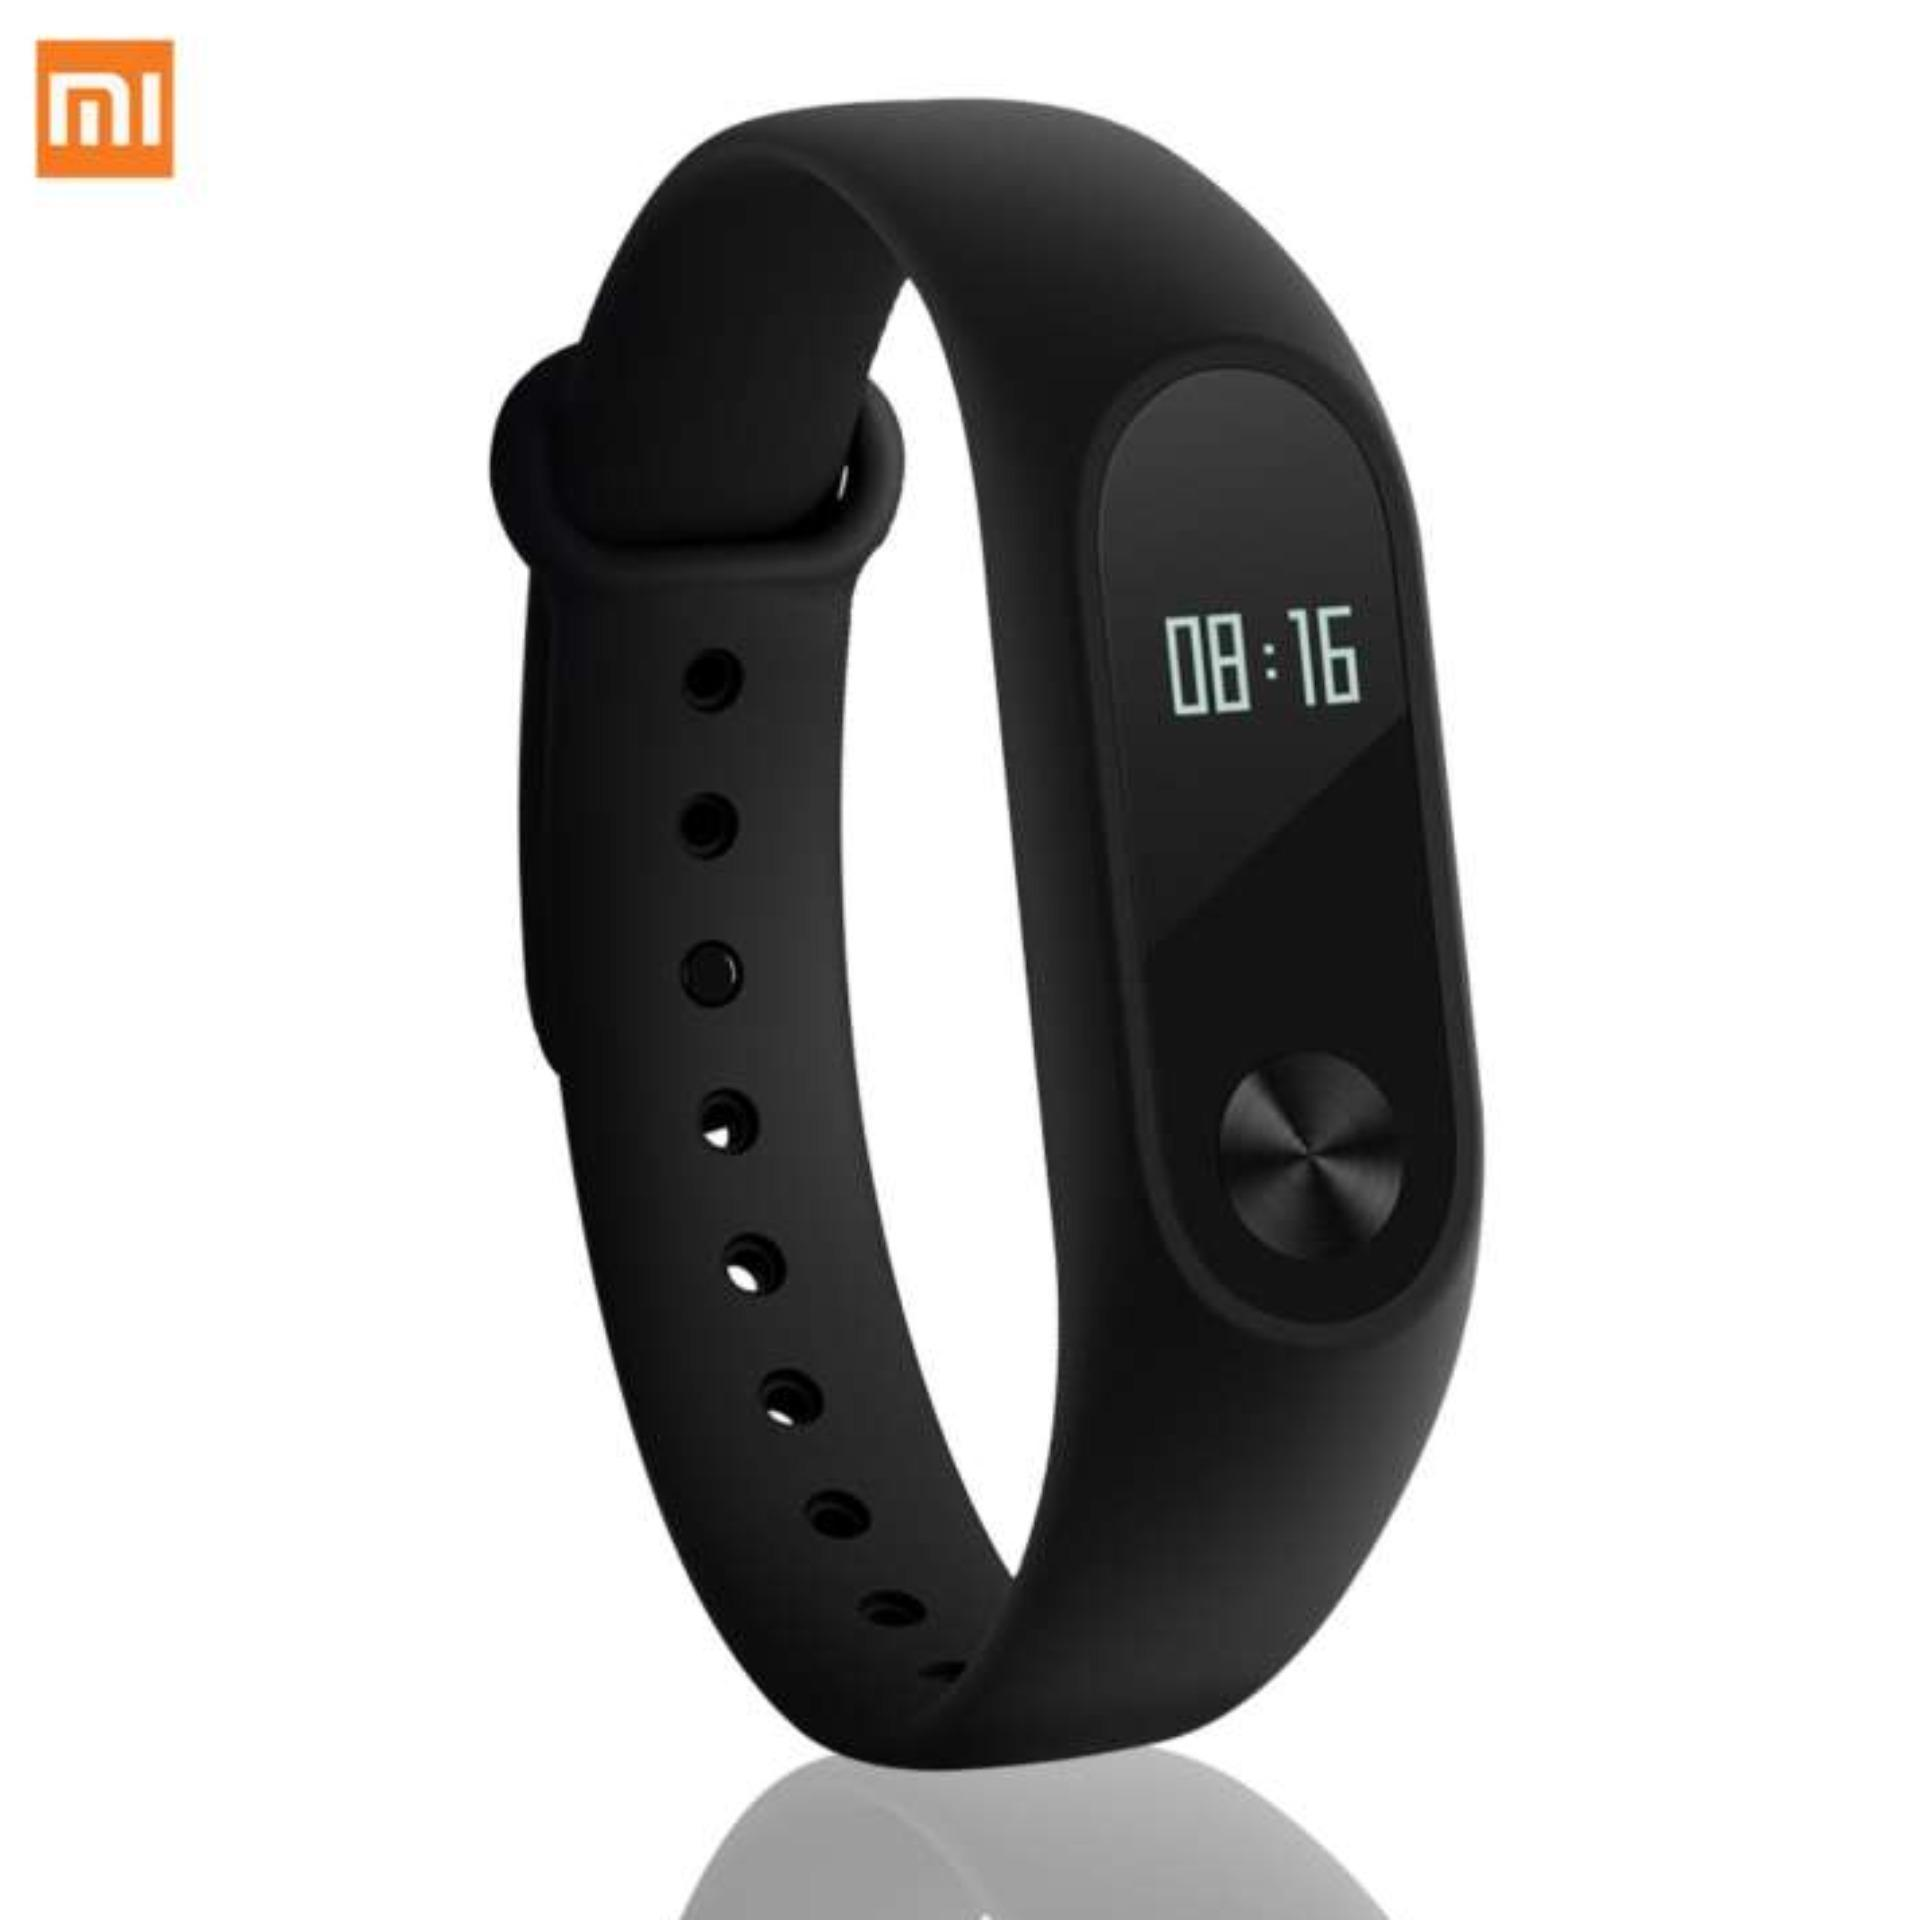 Xiaomi Mi Band 2 Smart Heart Rate Monitor Fitness Tracker (Black)